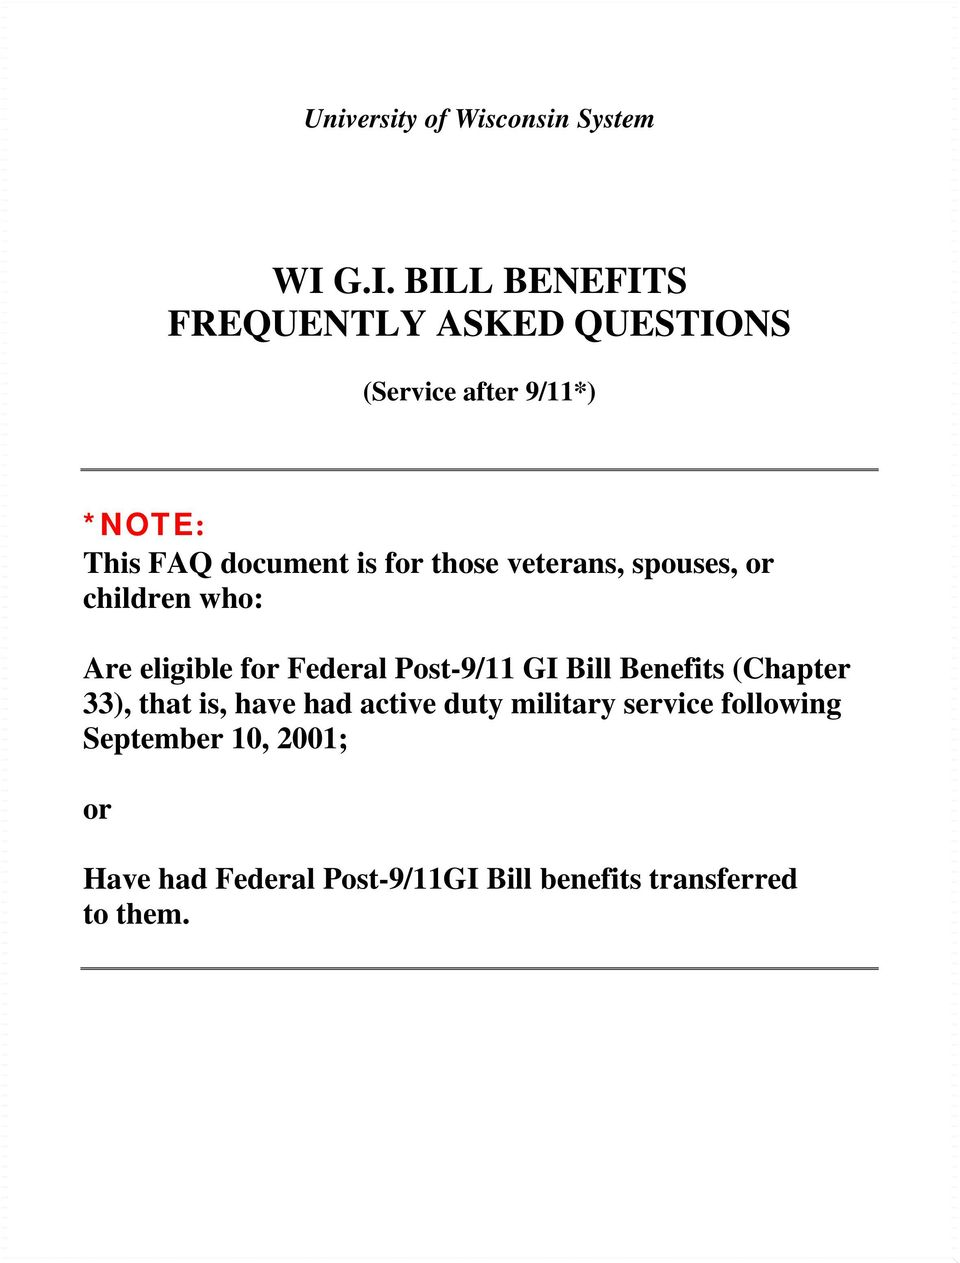 for those veterans, spouses, or children who: Are eligible for Federal Post-9/11 GI Bill